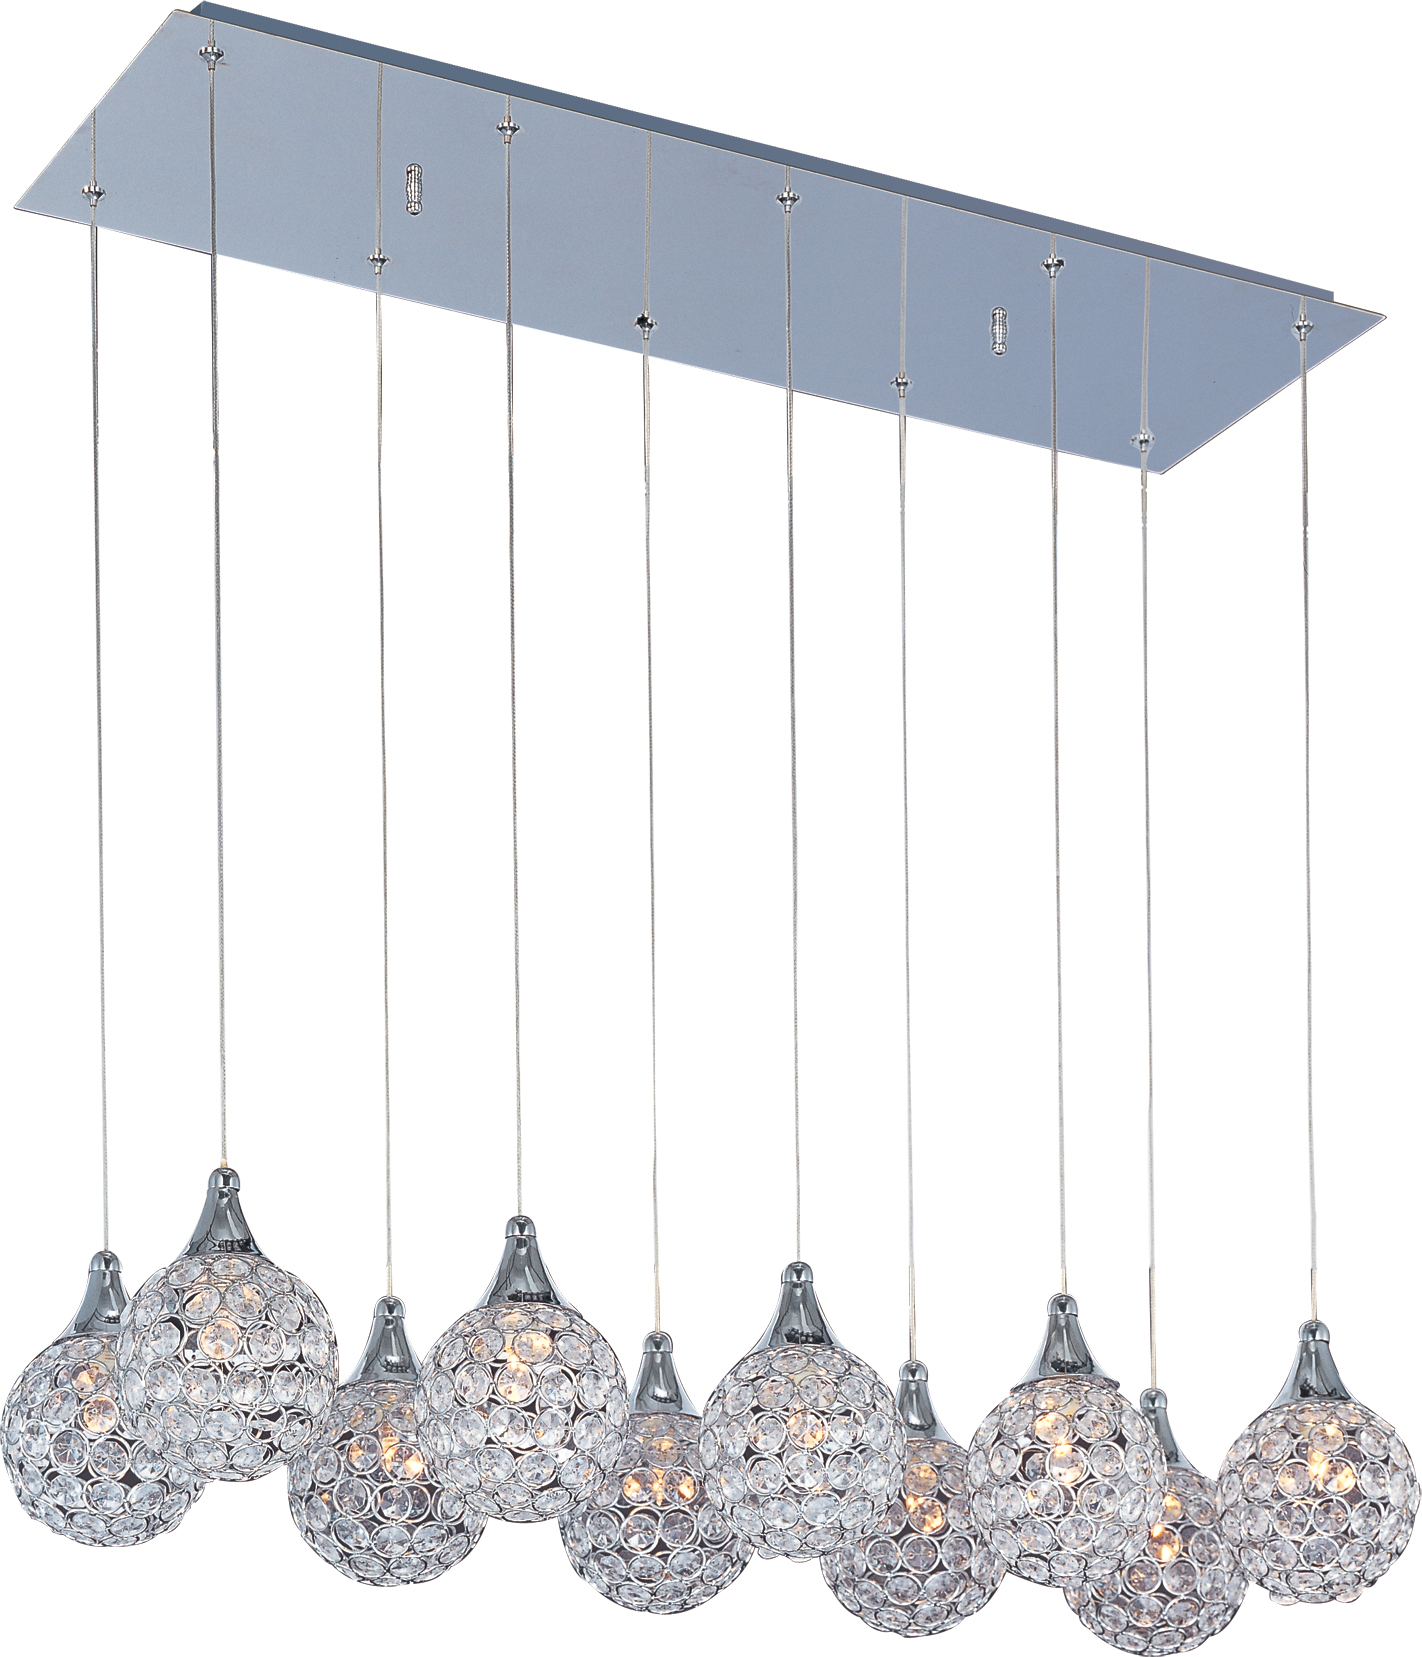 Brilliant 10-Light Pendant